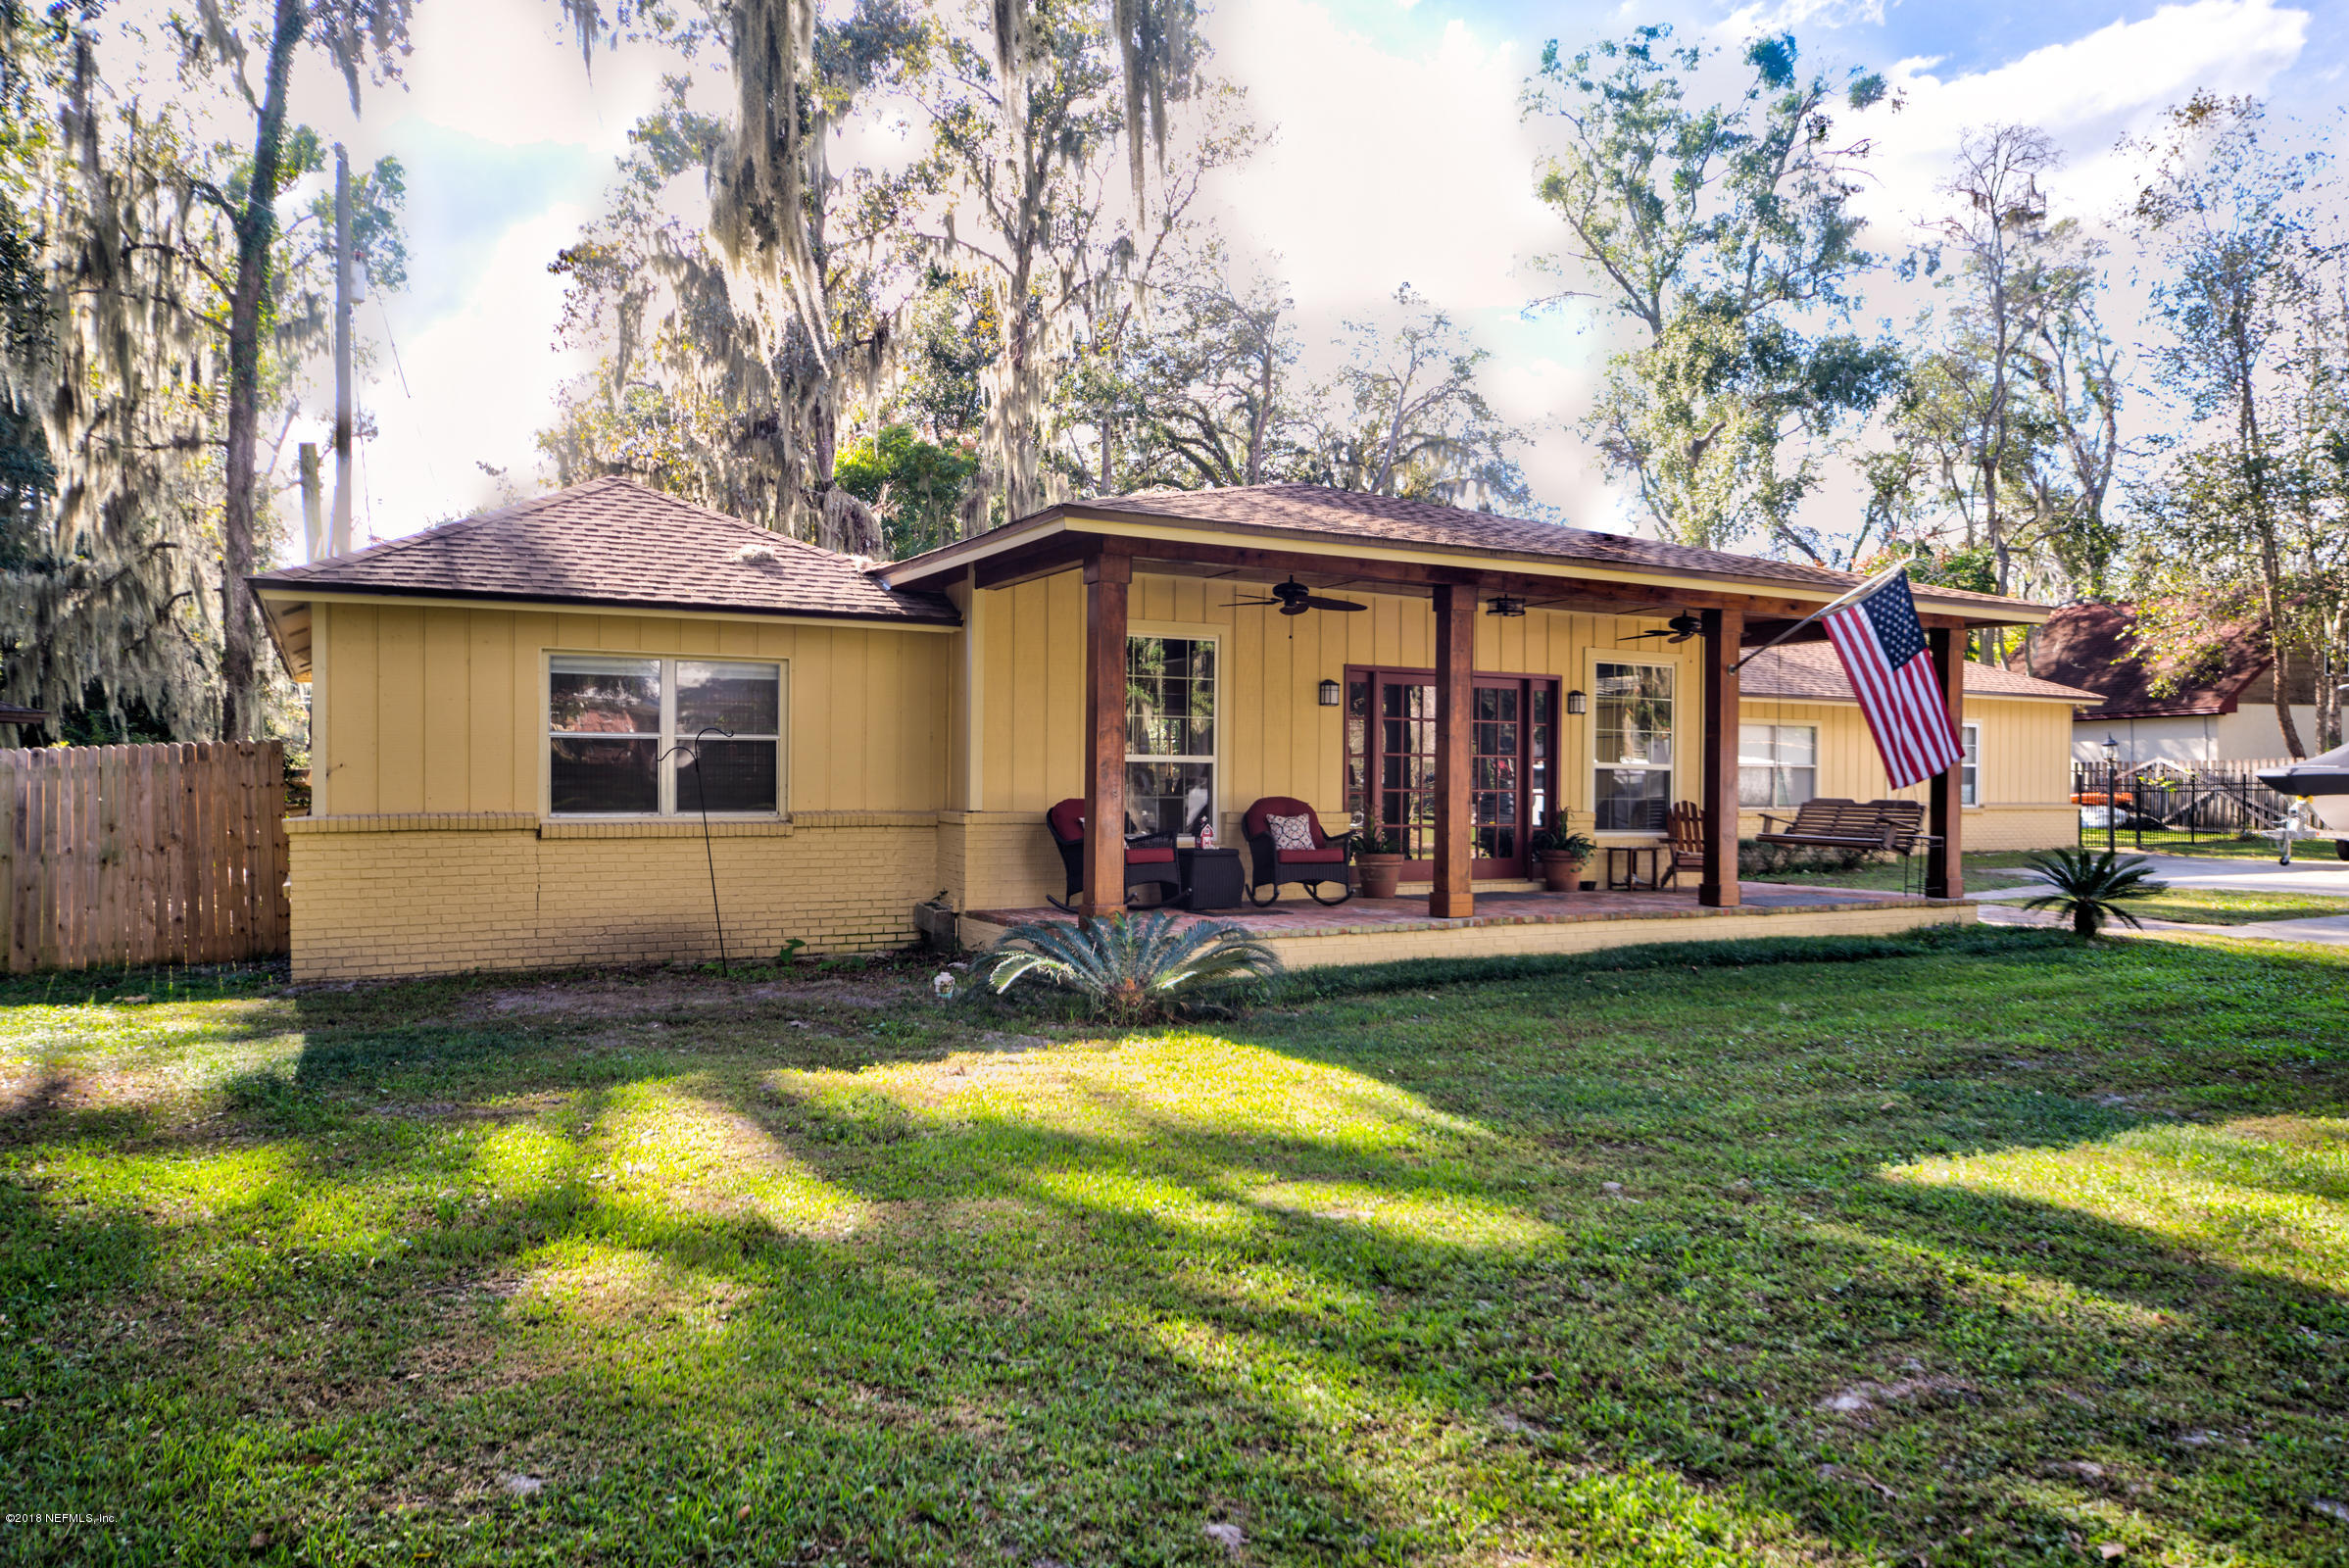 3454 LULLWATER, ORANGE PARK, FLORIDA 32073, 5 Bedrooms Bedrooms, ,3 BathroomsBathrooms,Residential - single family,For sale,LULLWATER,964551